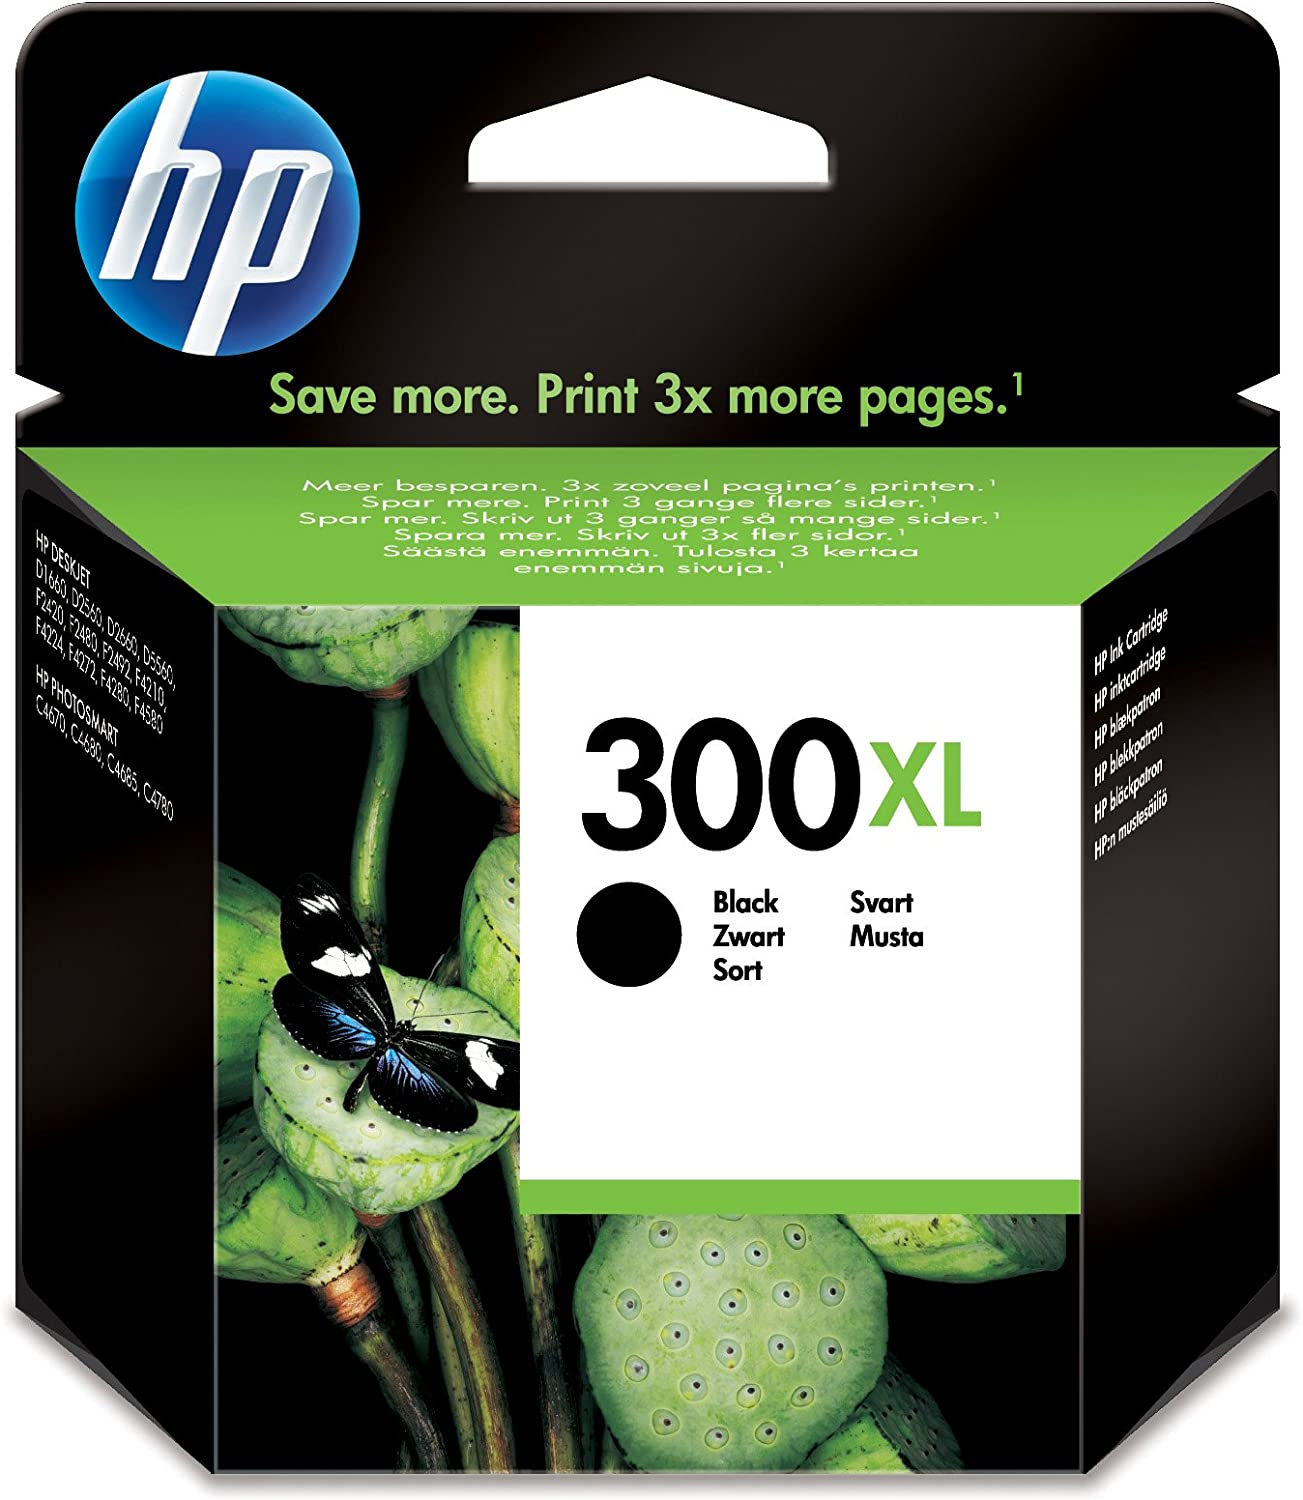 Hp 300Xl Black Ink Cartridge Negro Cartucho de Tinta - Cartucho de Tinta Para Impresoras (Negro, Hp Deskjet D2500, Hp Deskjet D2530, Hp Deskjet F4200, High (Xl) Yield, Negro, 20 - 80%, -